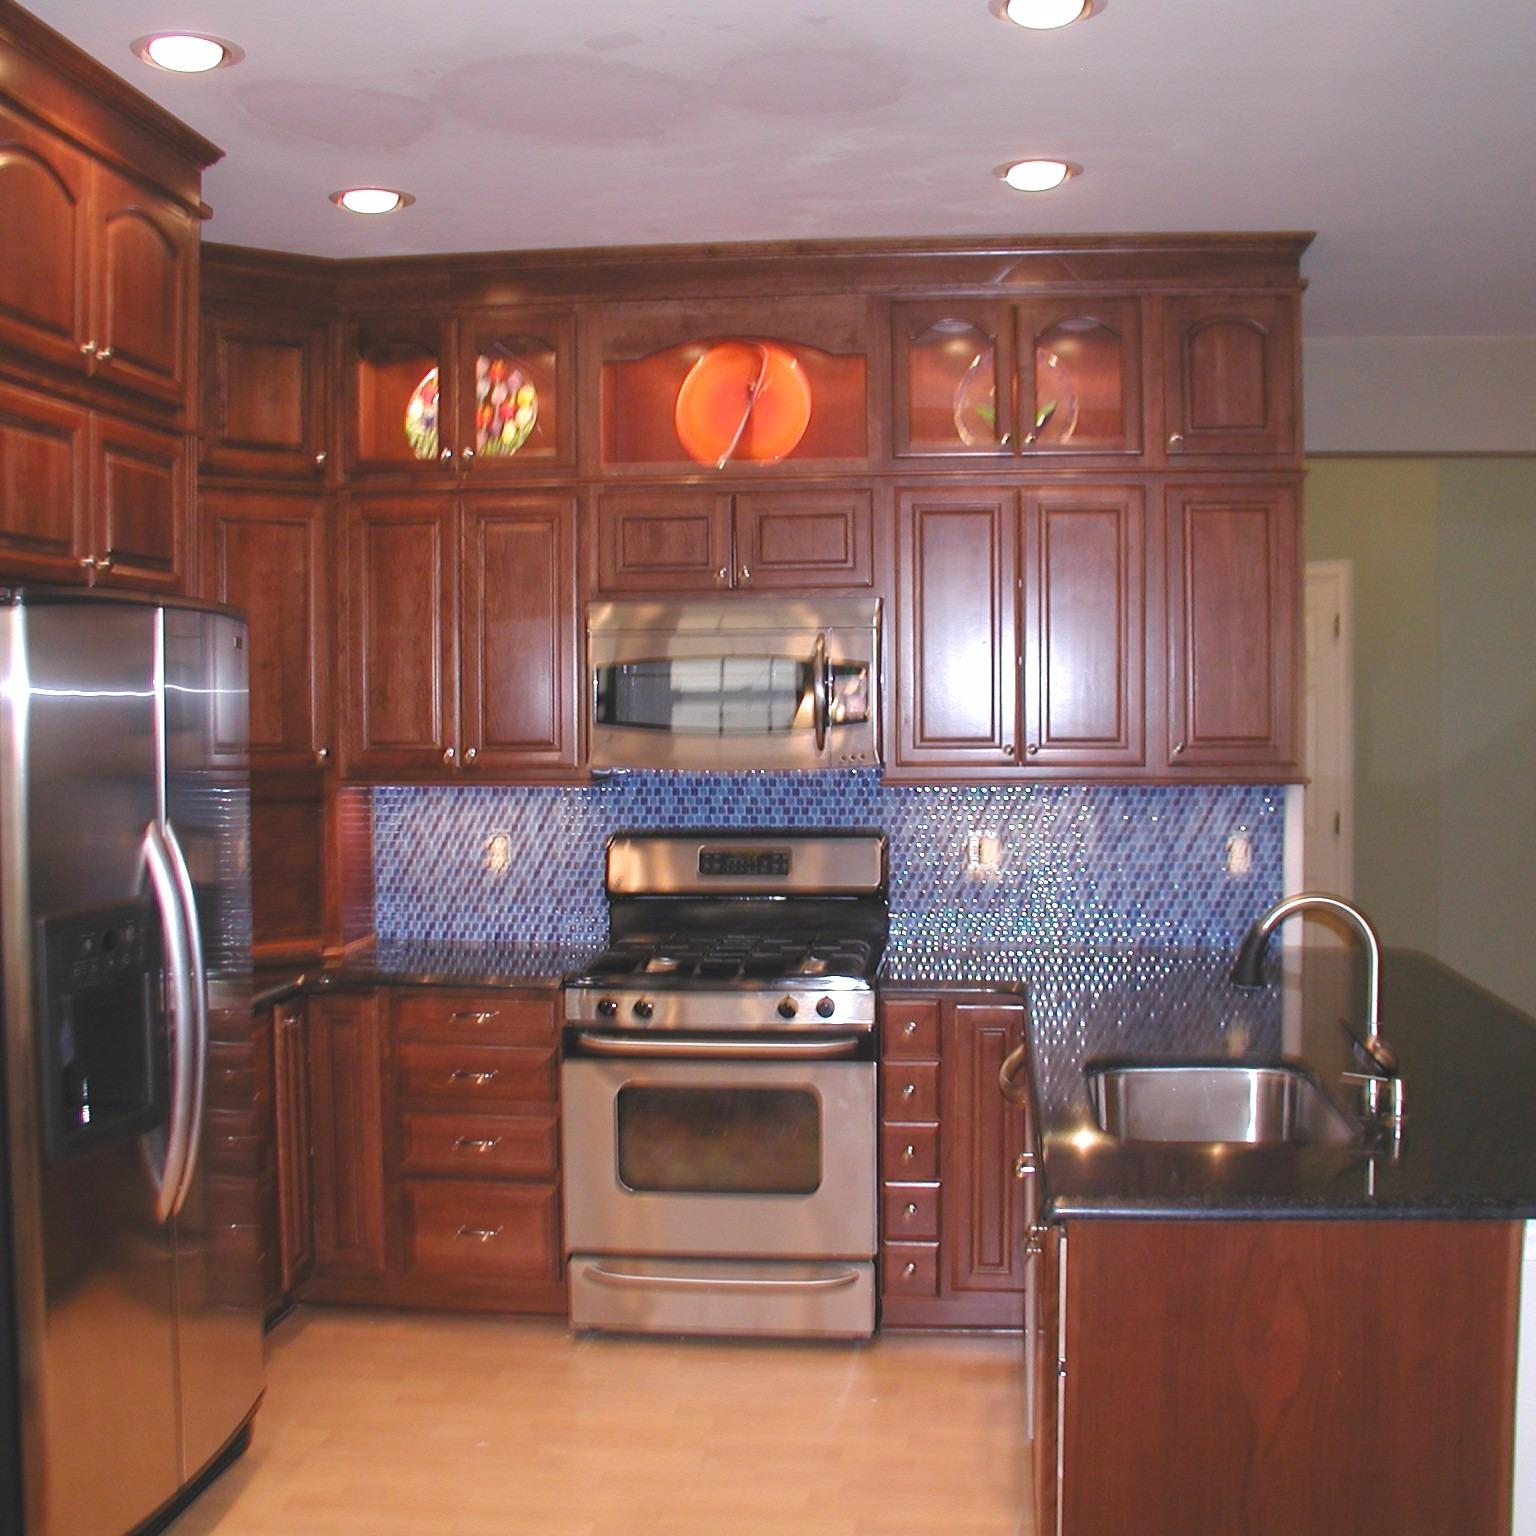 Kitchen Design Centers In North Brunswick Nj 08902